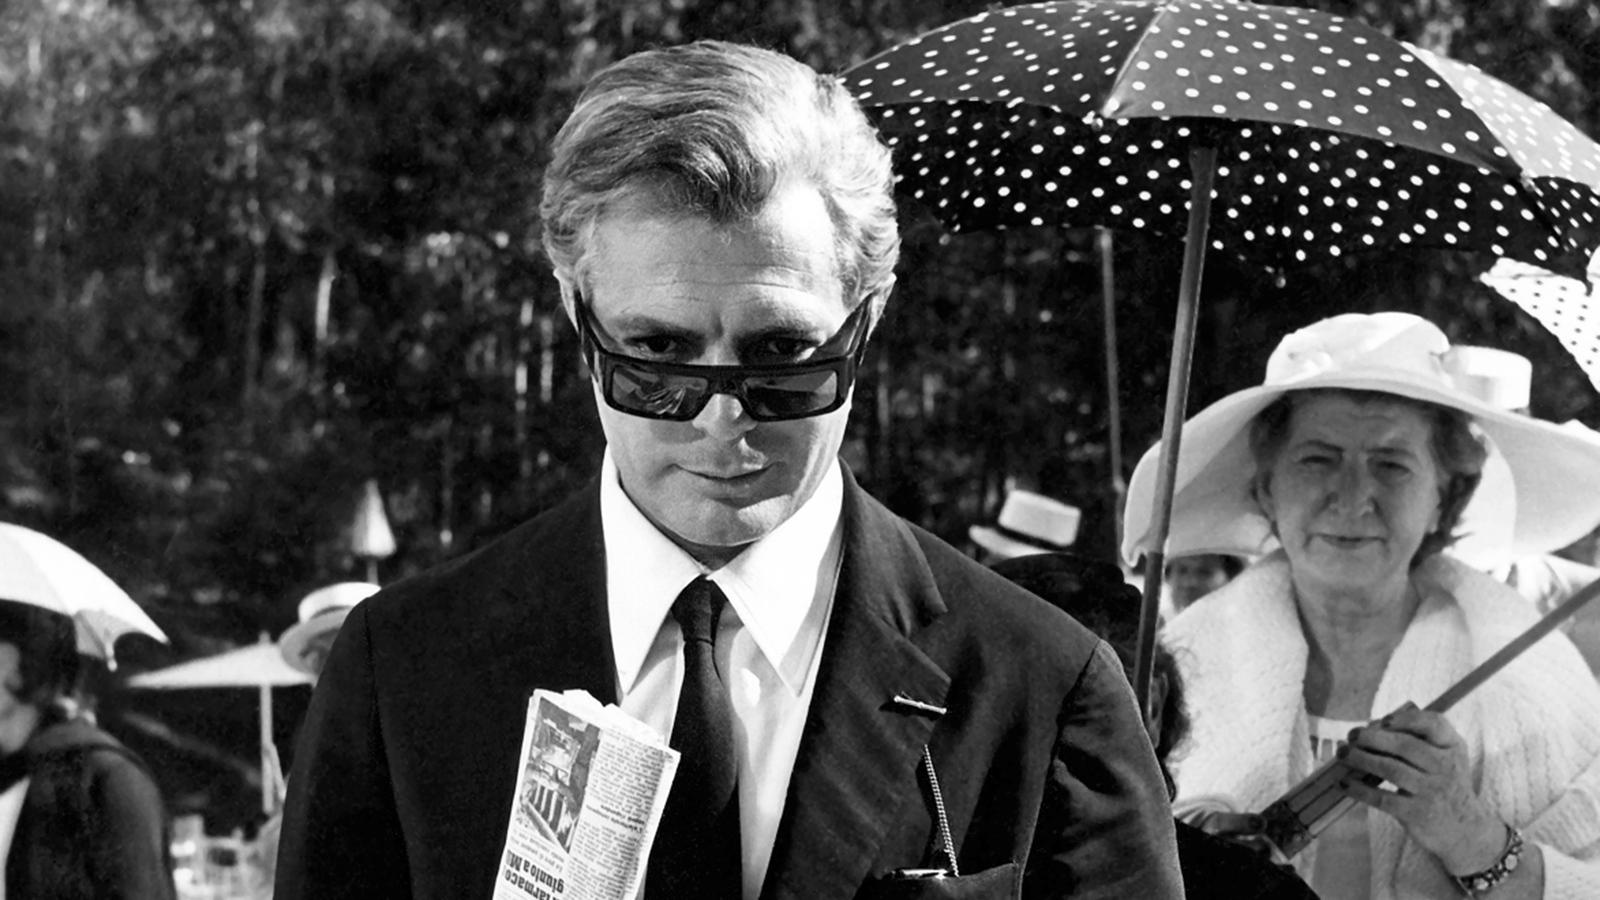 FCA Film Series: Who Are We? The Art of Memory - Fellini's 8 1/2